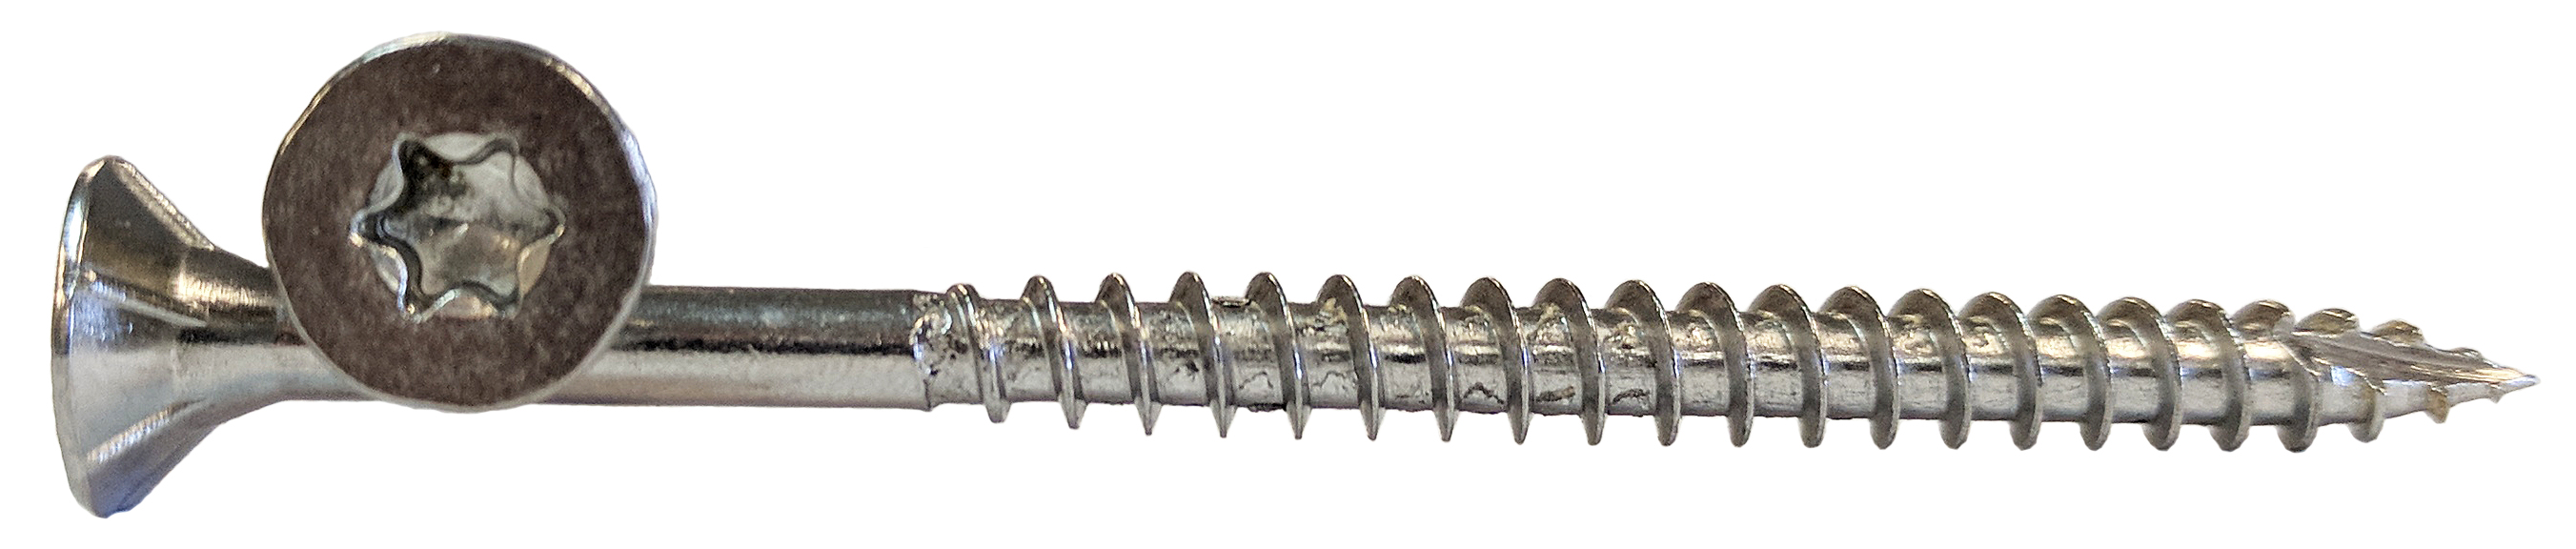 Star Drive Stainless Deck Screw